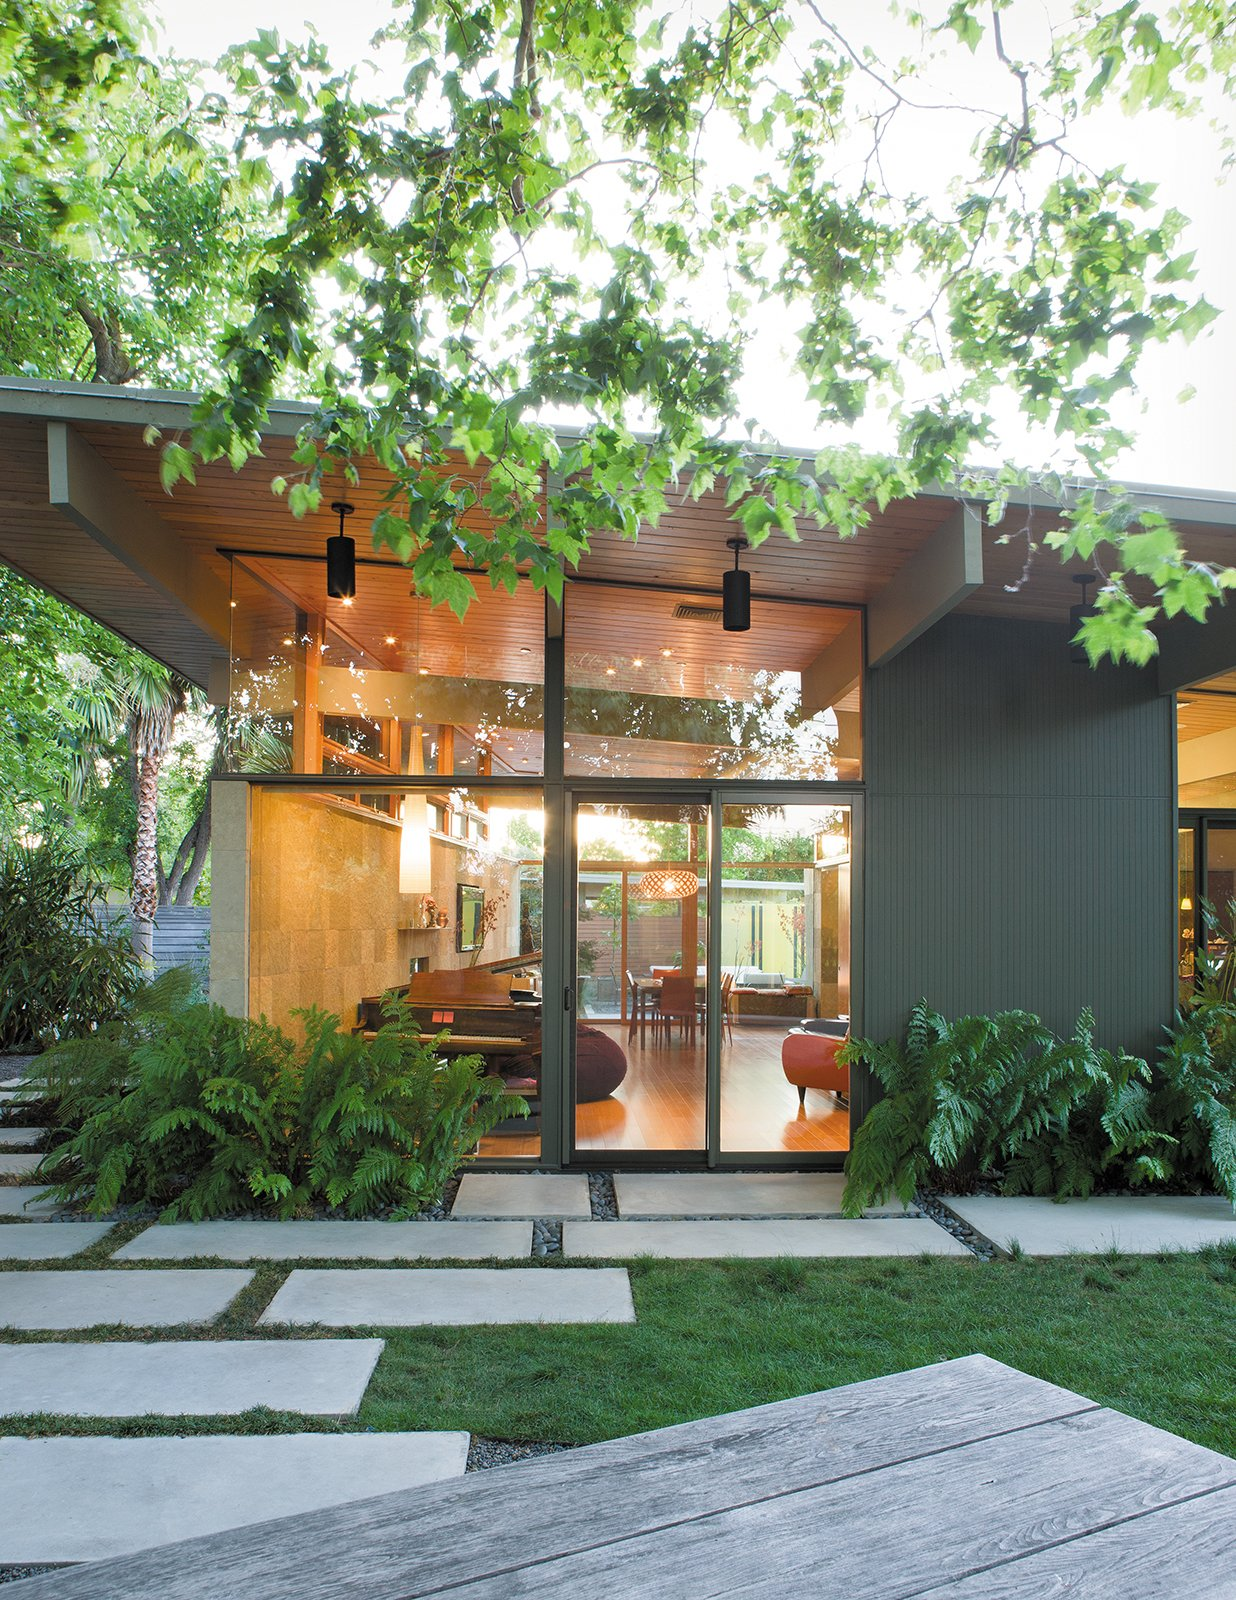 Photo 5 Of 8 In 7 Modern Eichler Renovations In California From Creative Landscape Design For A